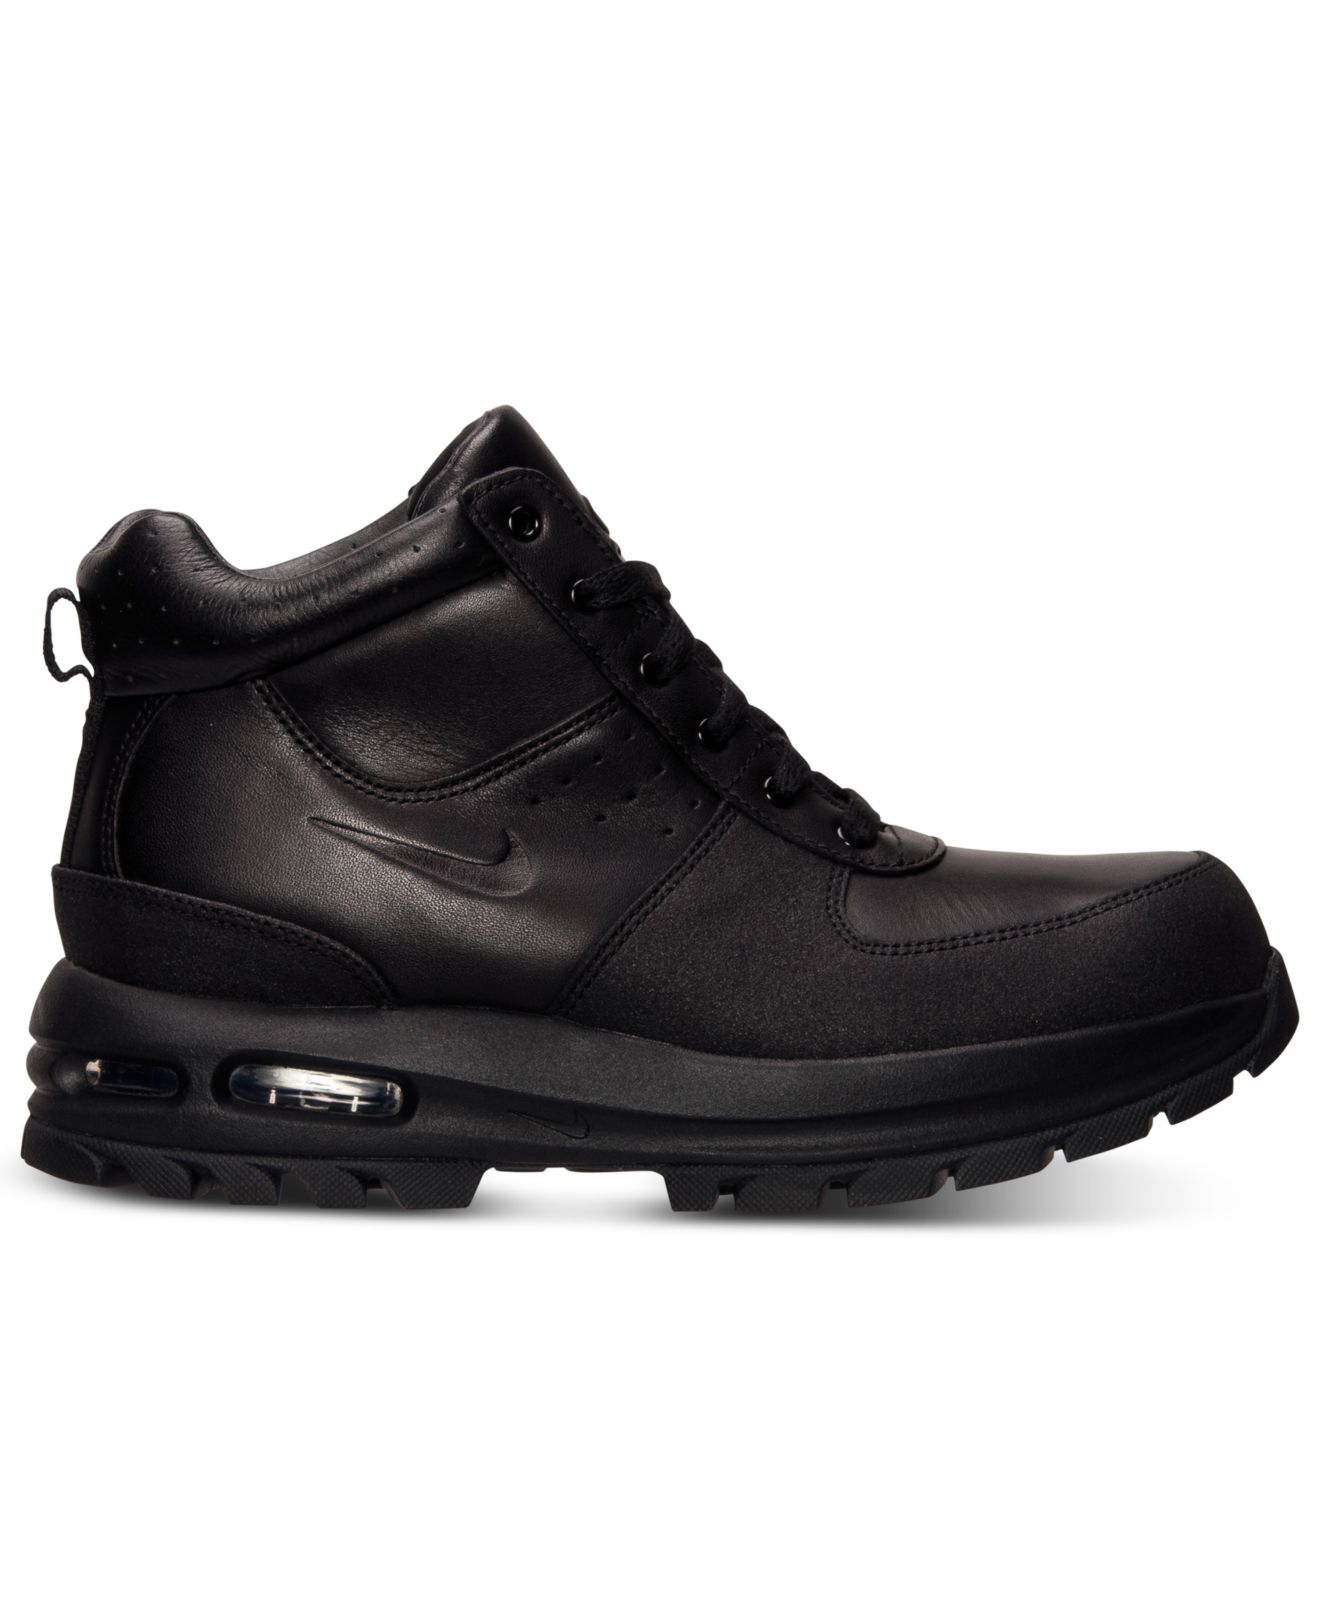 nike air max goaterra leather boots in black for lyst